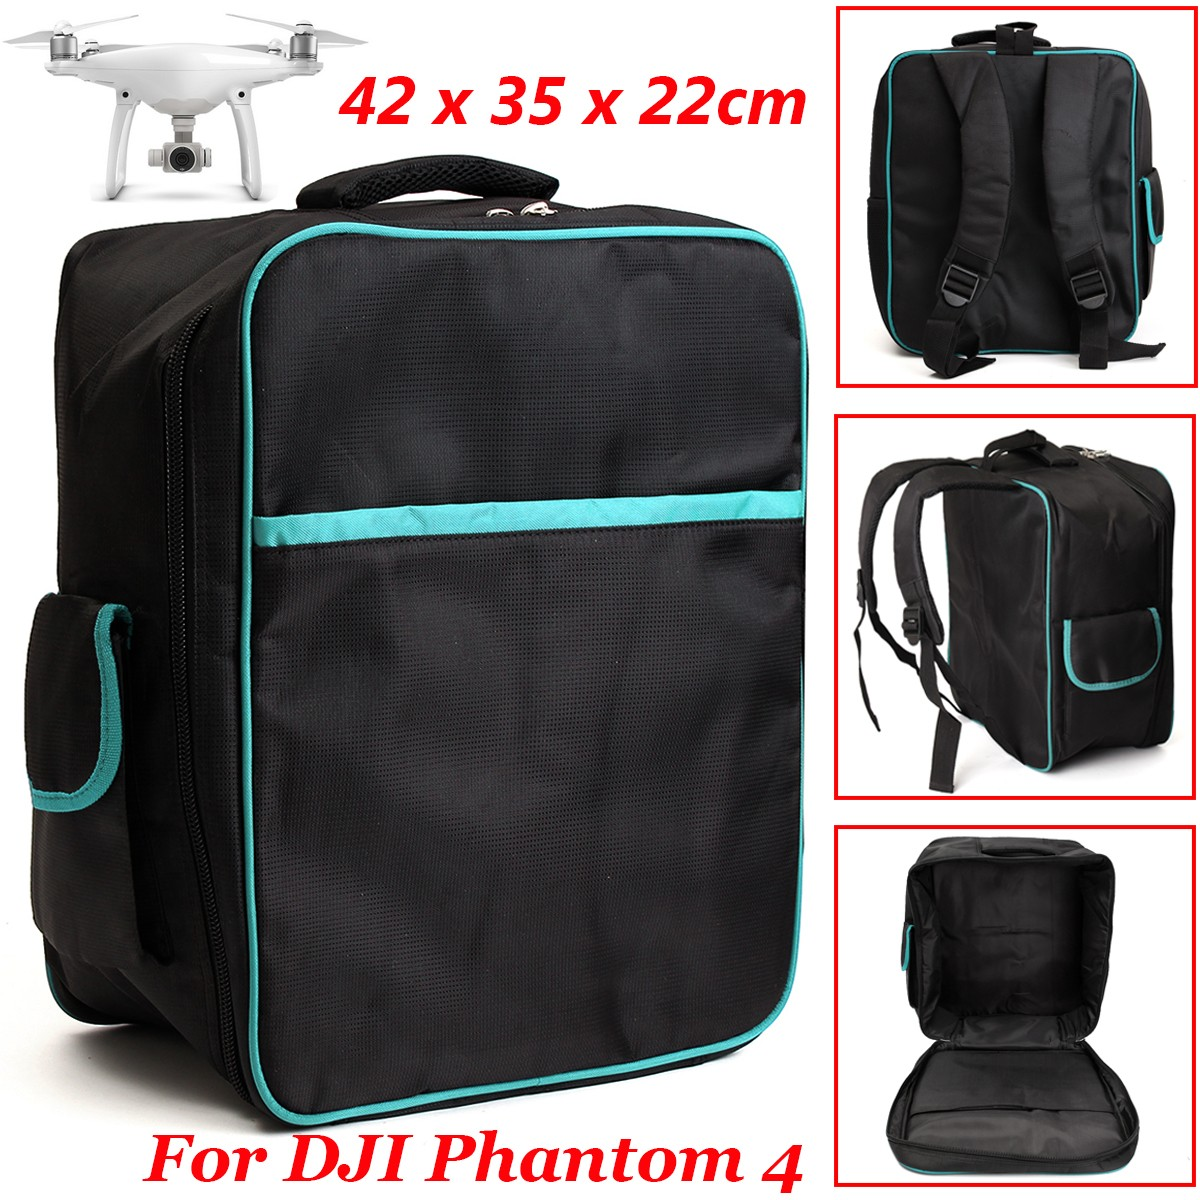 New Backpack Shoulder Bag Carrying Case for DJI Phantom 4 Phantom 3 Quadcopter Drone Bags Waterproof Snow Cloth Fabric yi la 2017 new winter fur collar hooded down cotton coat fashion women s long coat cotton warm jacket parka plus size 3xl s869